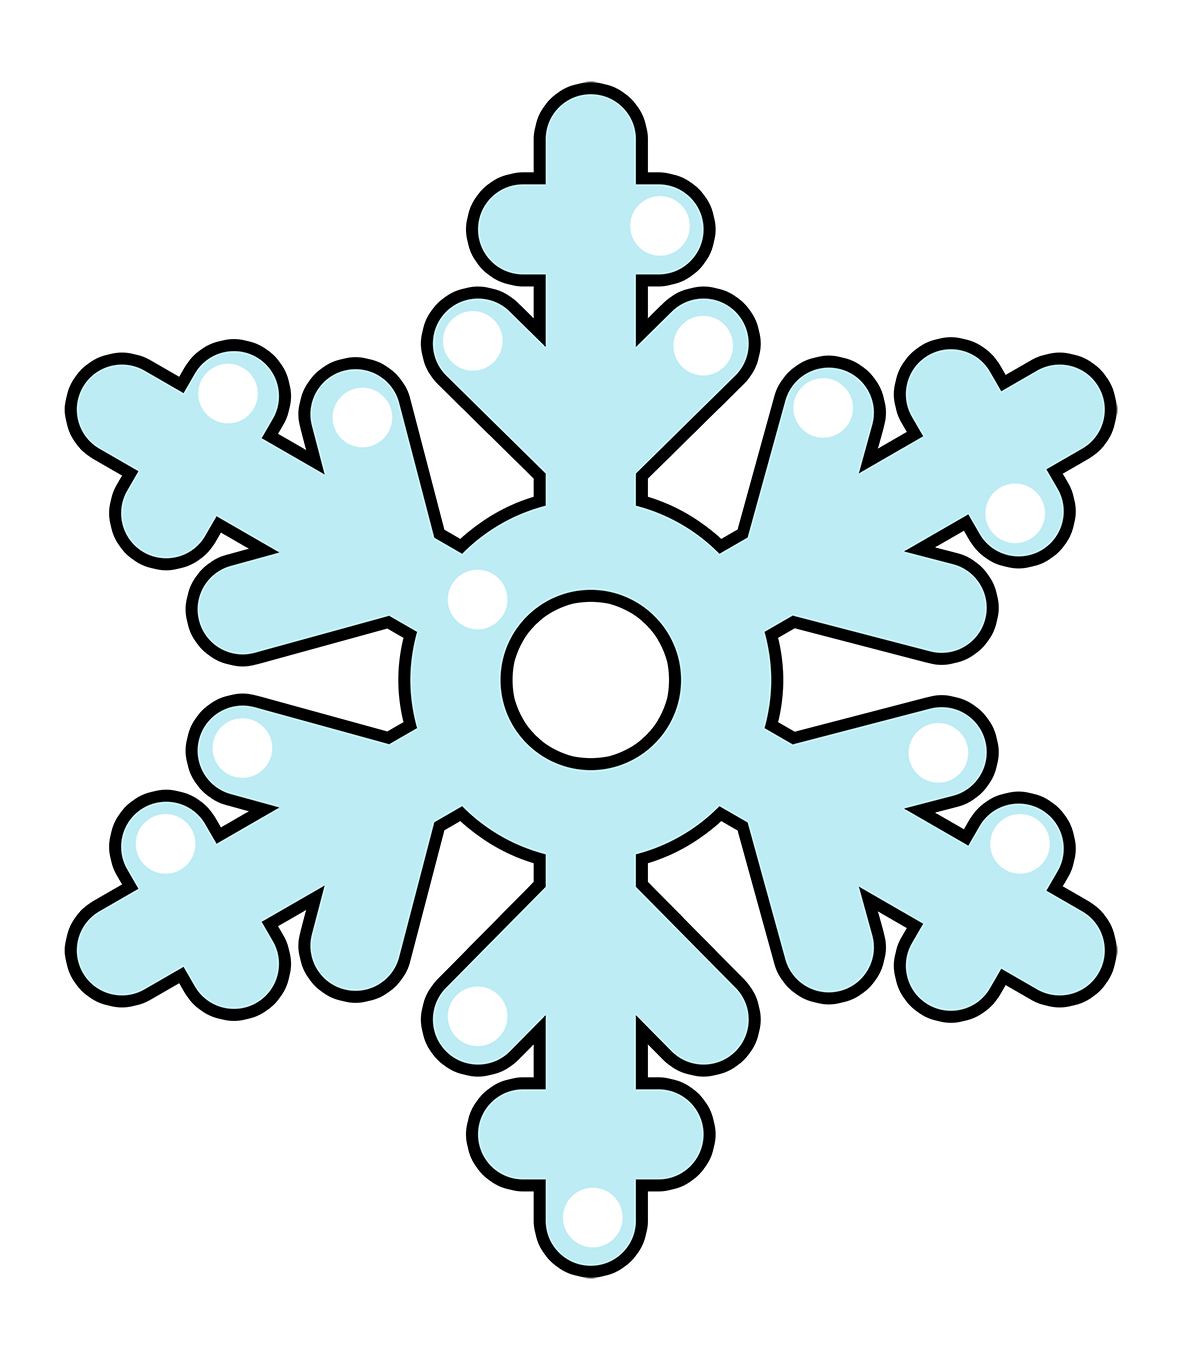 Free Cartoon Snowflake Clip Art u0026mid-Free Cartoon Snowflake Clip Art u0026middot; snowflake9-10